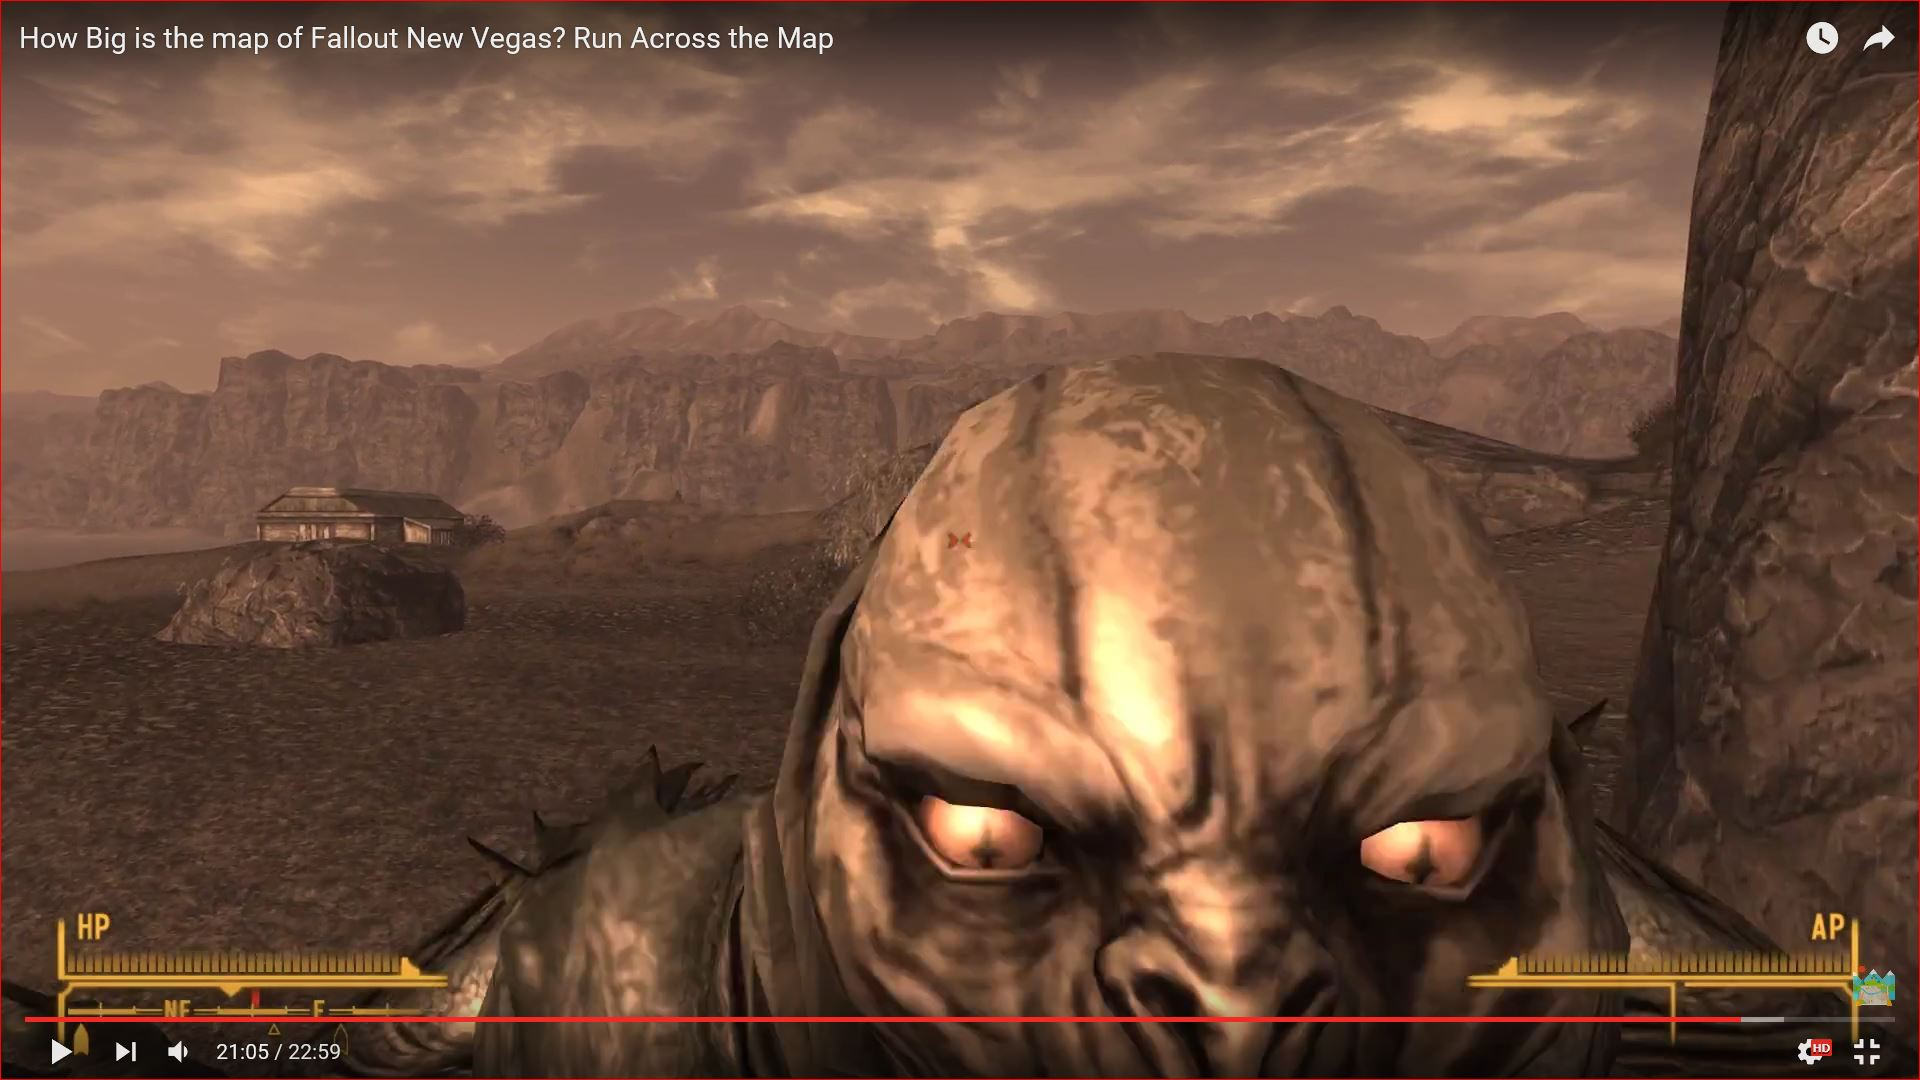 Fallout New Vegas - Run Across the Map - How Big is the Map